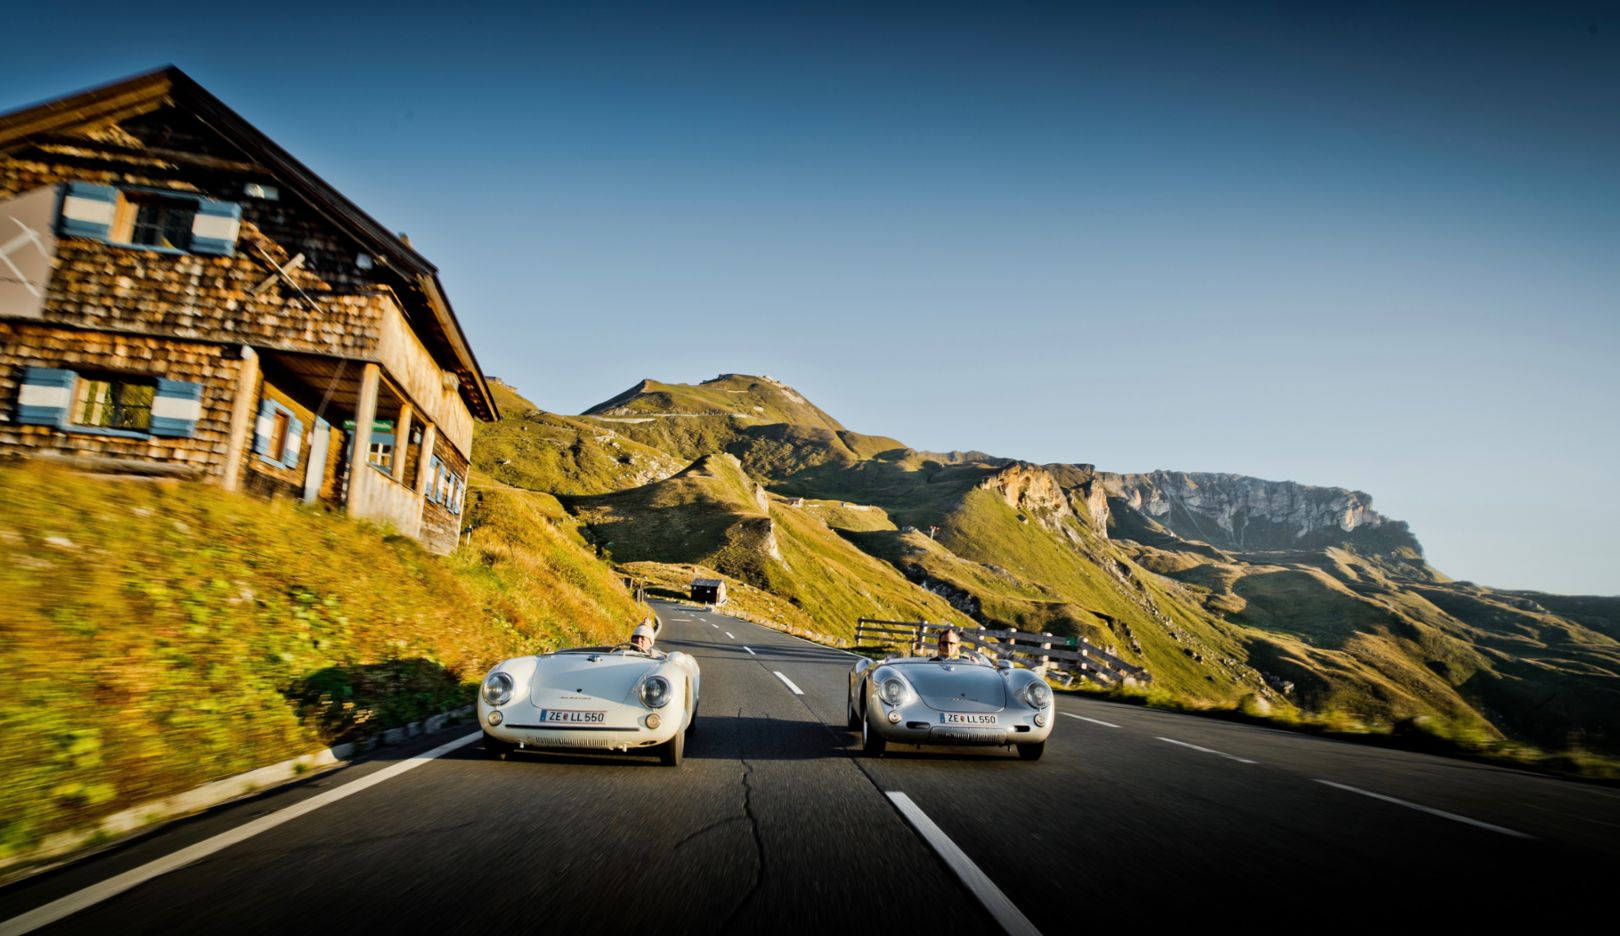 For the first time, Wolfgang Porsche (left) and his son Ferdinand are driving two 550 Spyders together on the Großglockner High Alpine Road.